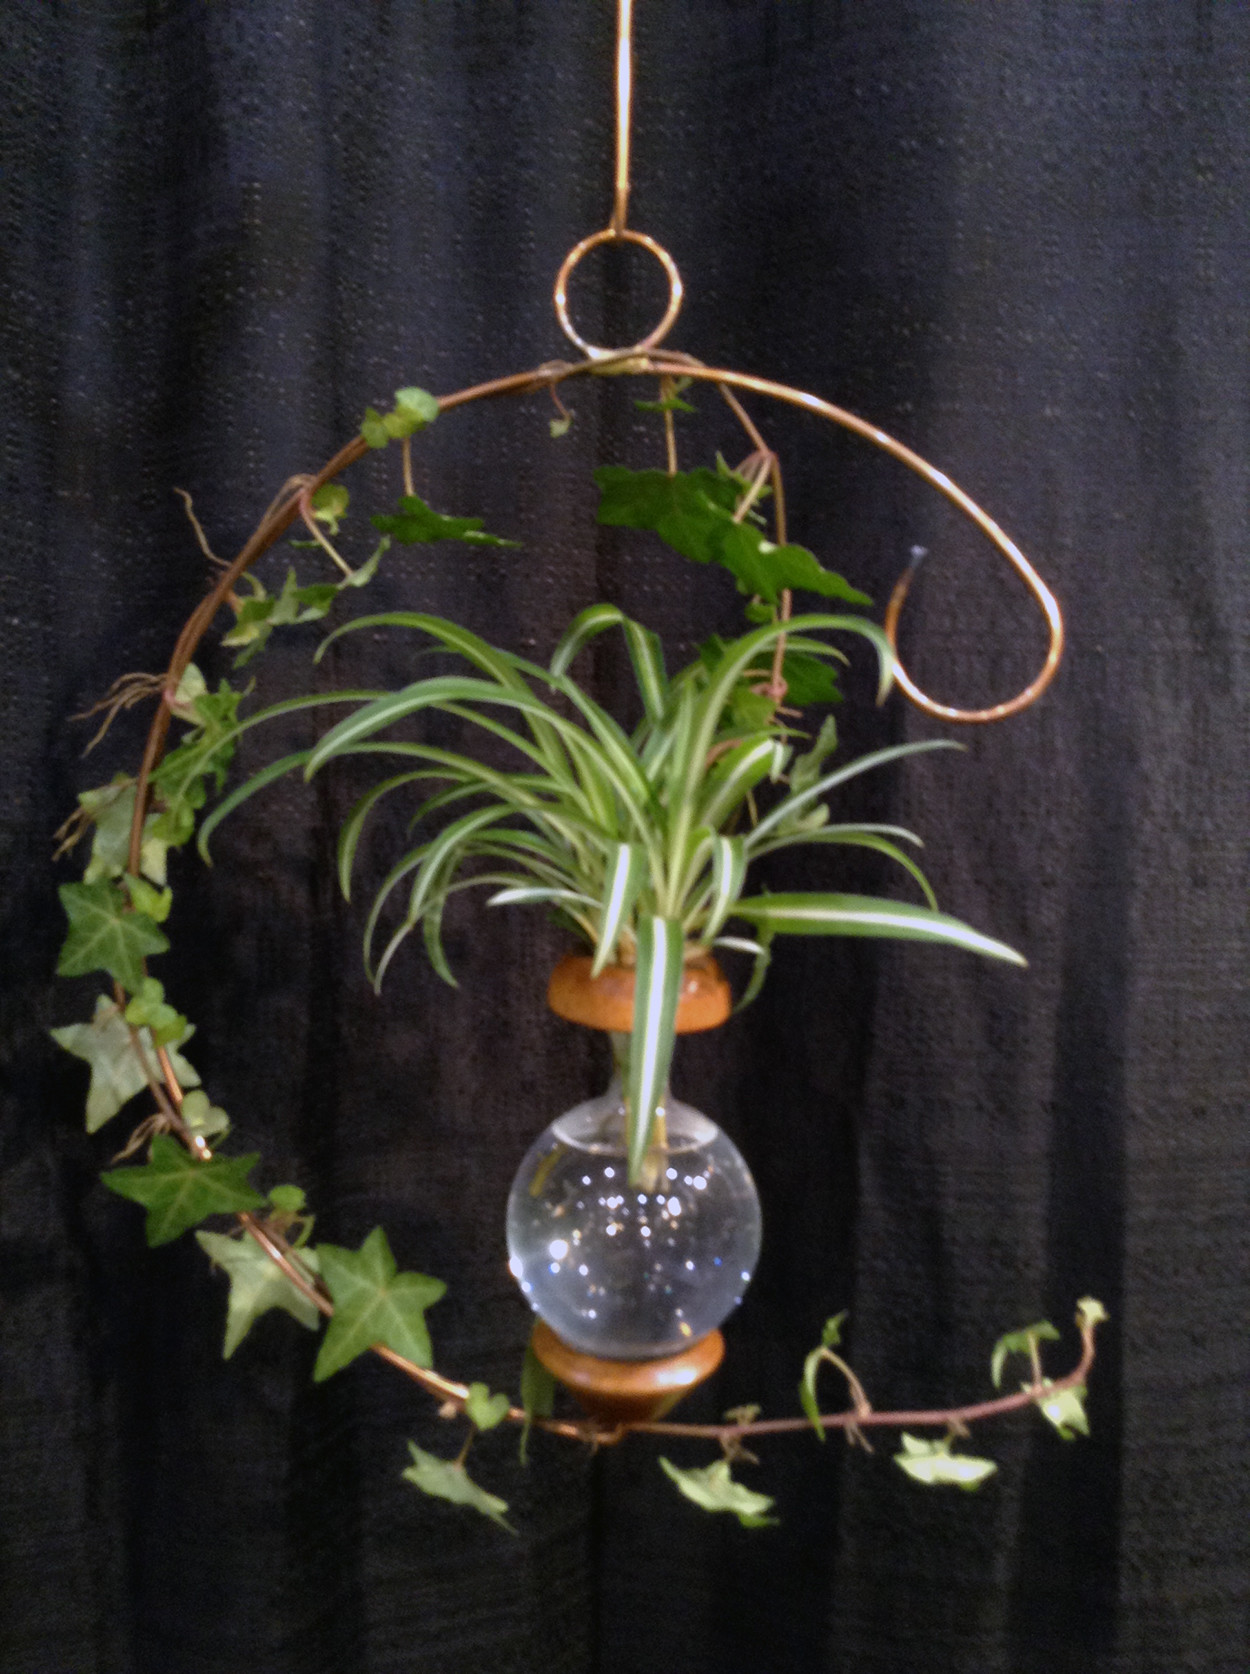 plant rooter vase of roots plant rooters handcrafted plant rooters in c shape plant rooter 26 00